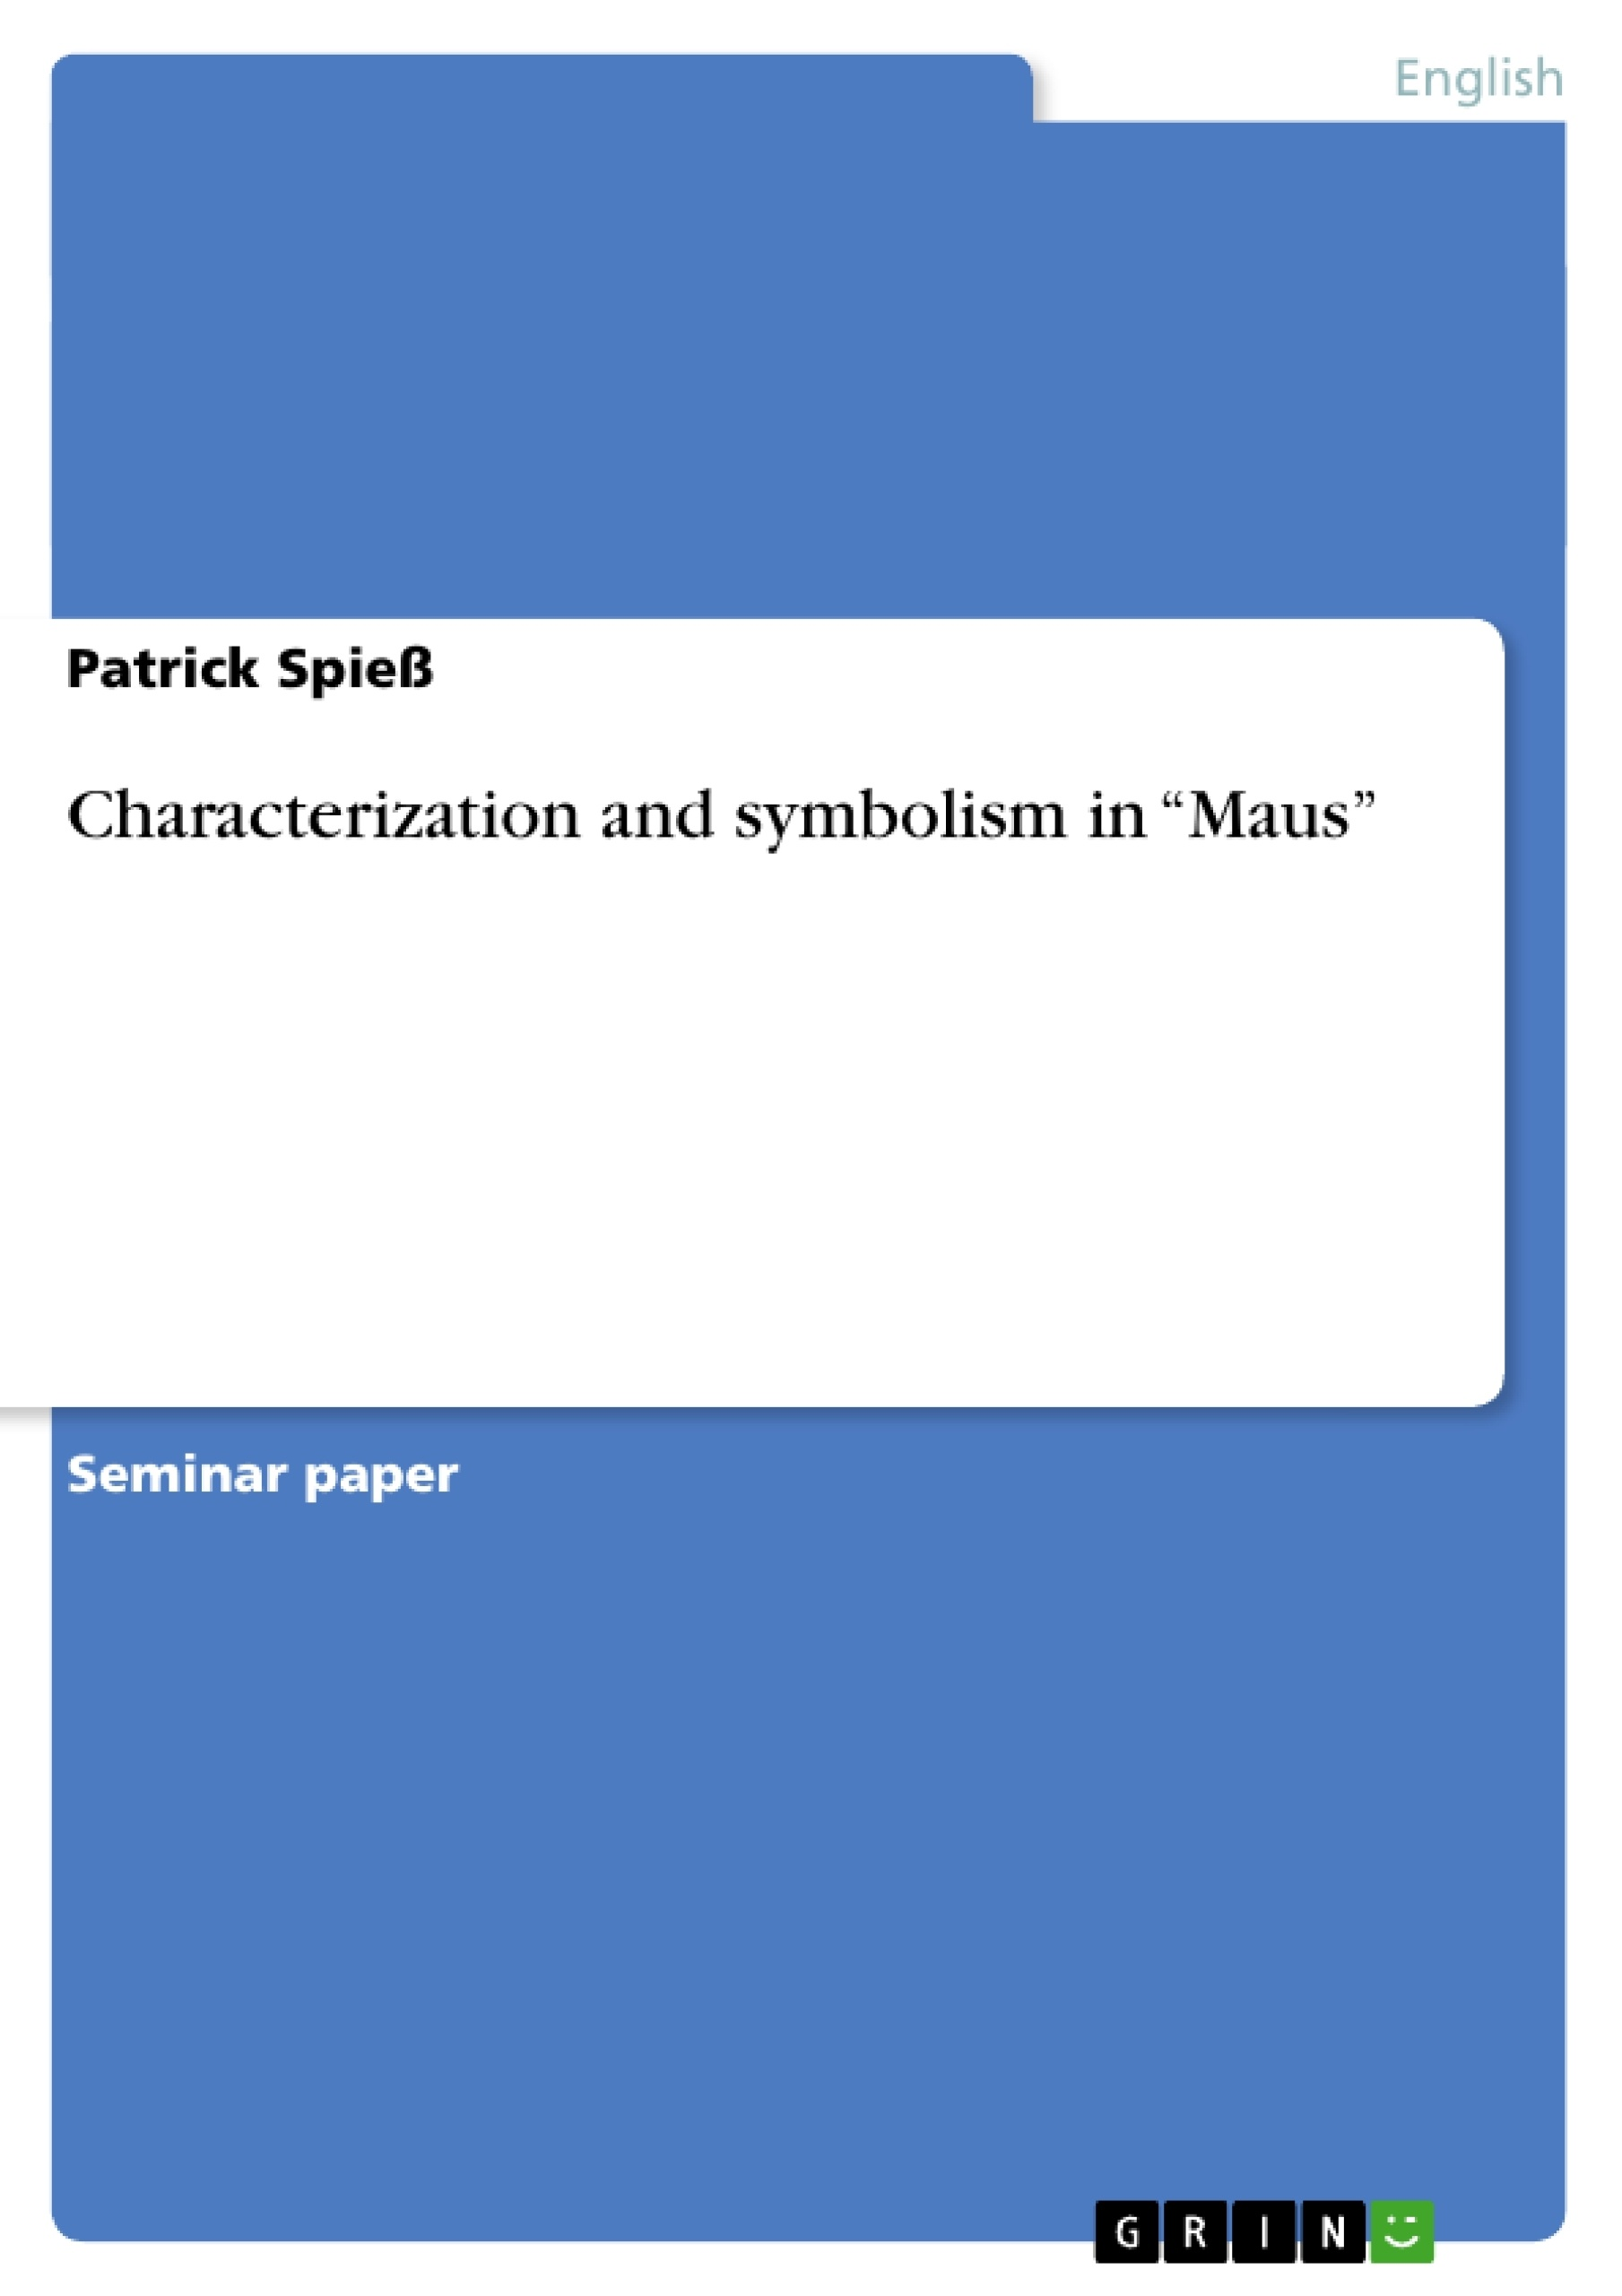 characterization and symbolism in maus publish your master s upload your own papers earn money and win an iphone 7